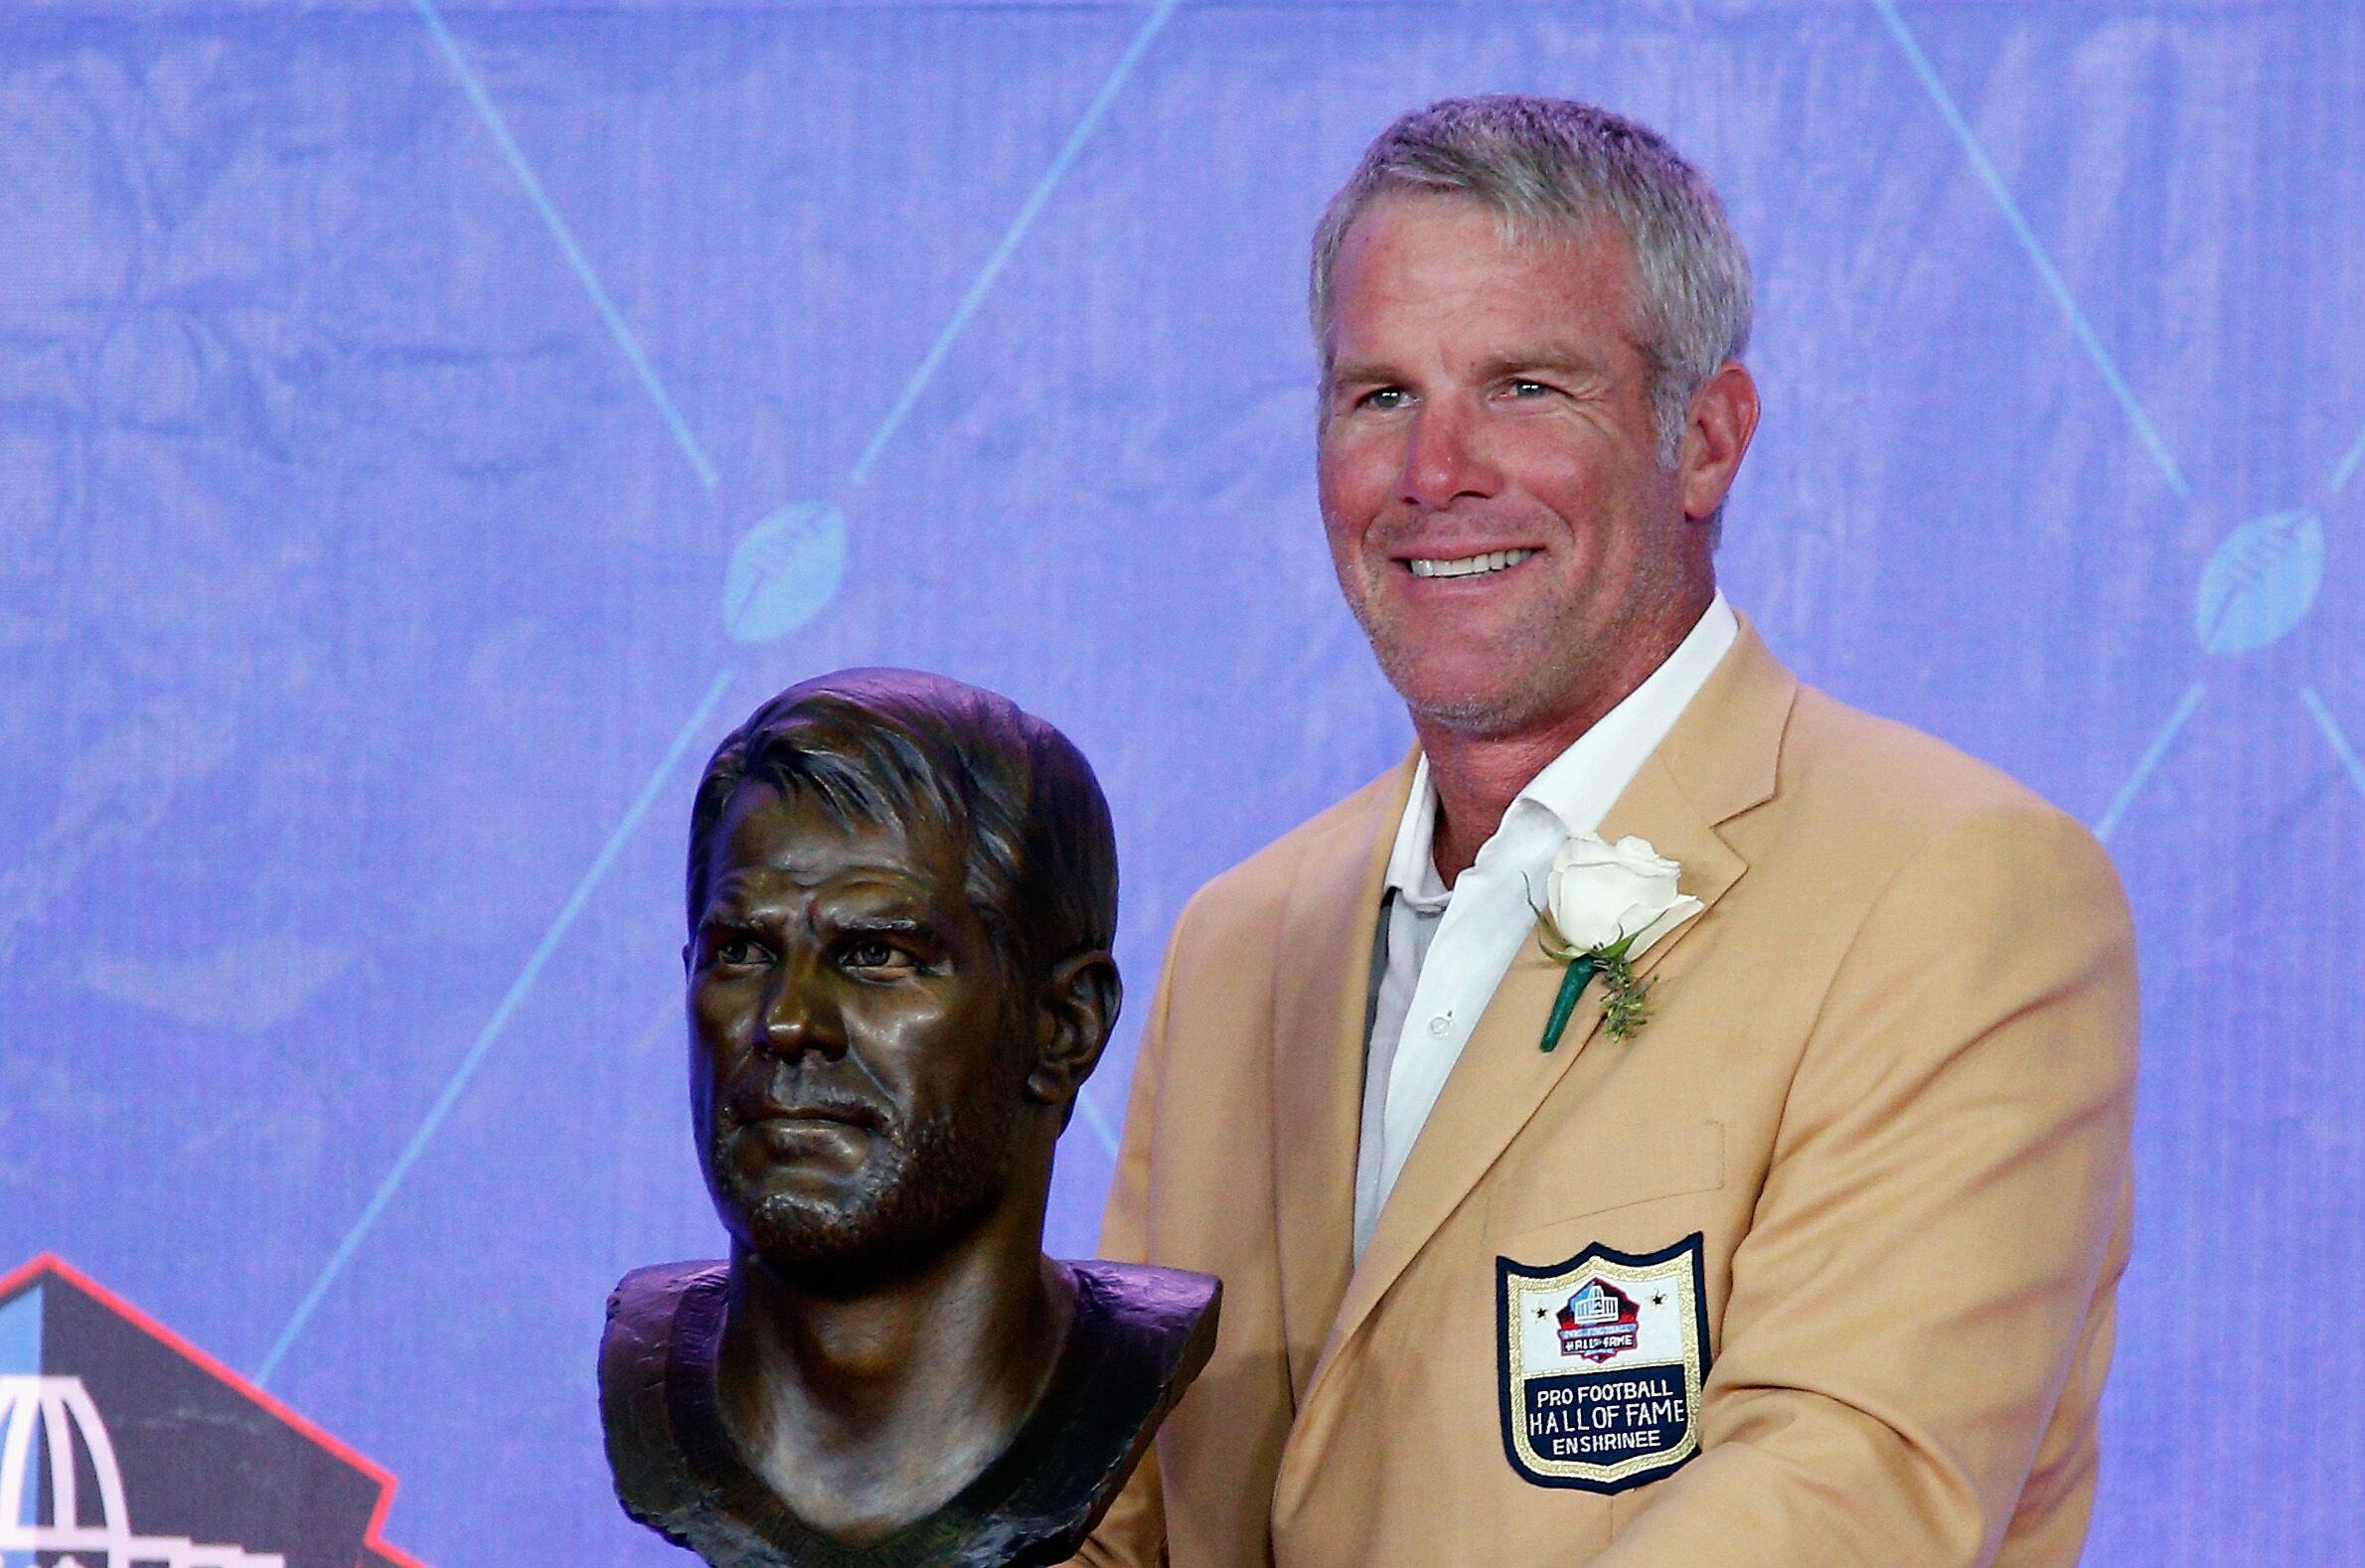 With the Vikings, Favre proved he was better than Rodgers